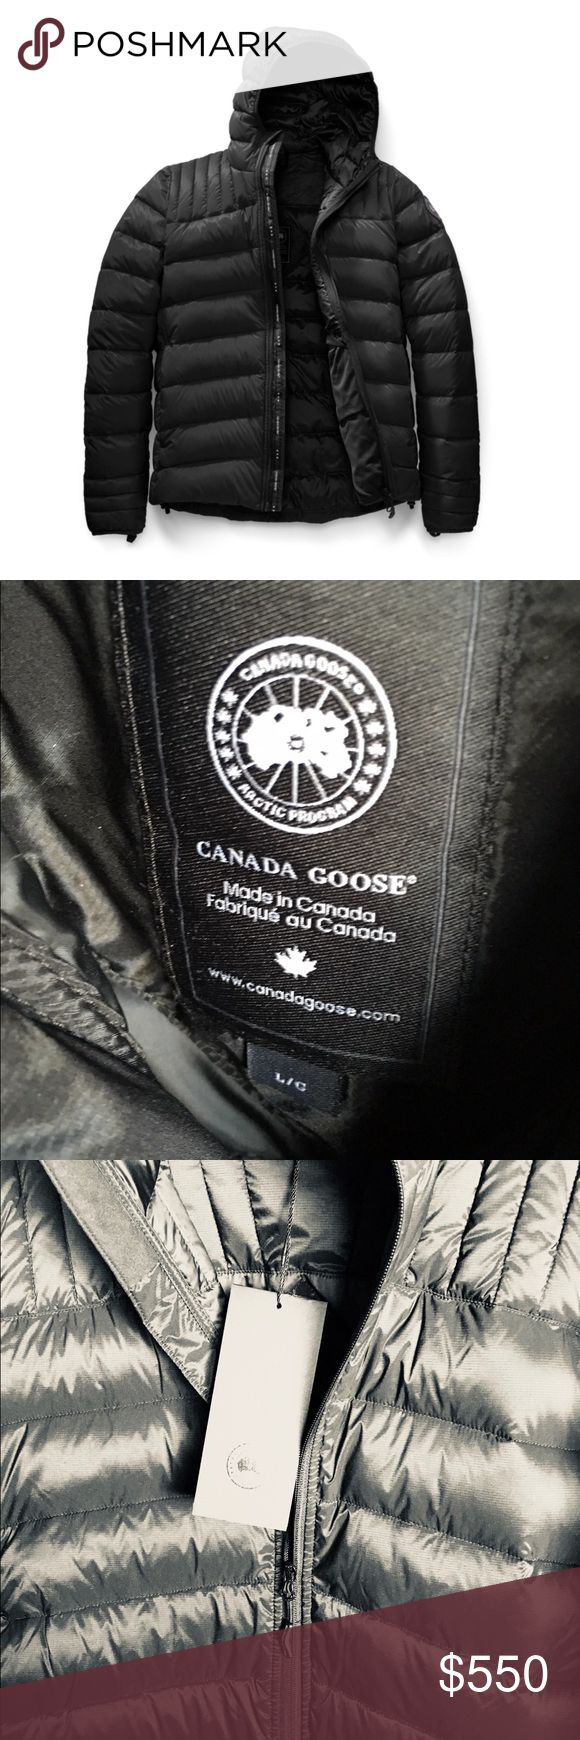 Canada Goose Brookvale Jacket Authentic Canada Goose Brookvale Black Label Hooded Jacket. Color:black Size:L  Poshmark will authenticate if asking price is met. Canada Goose Jackets & Coats Lightweight & Shirt Jackets